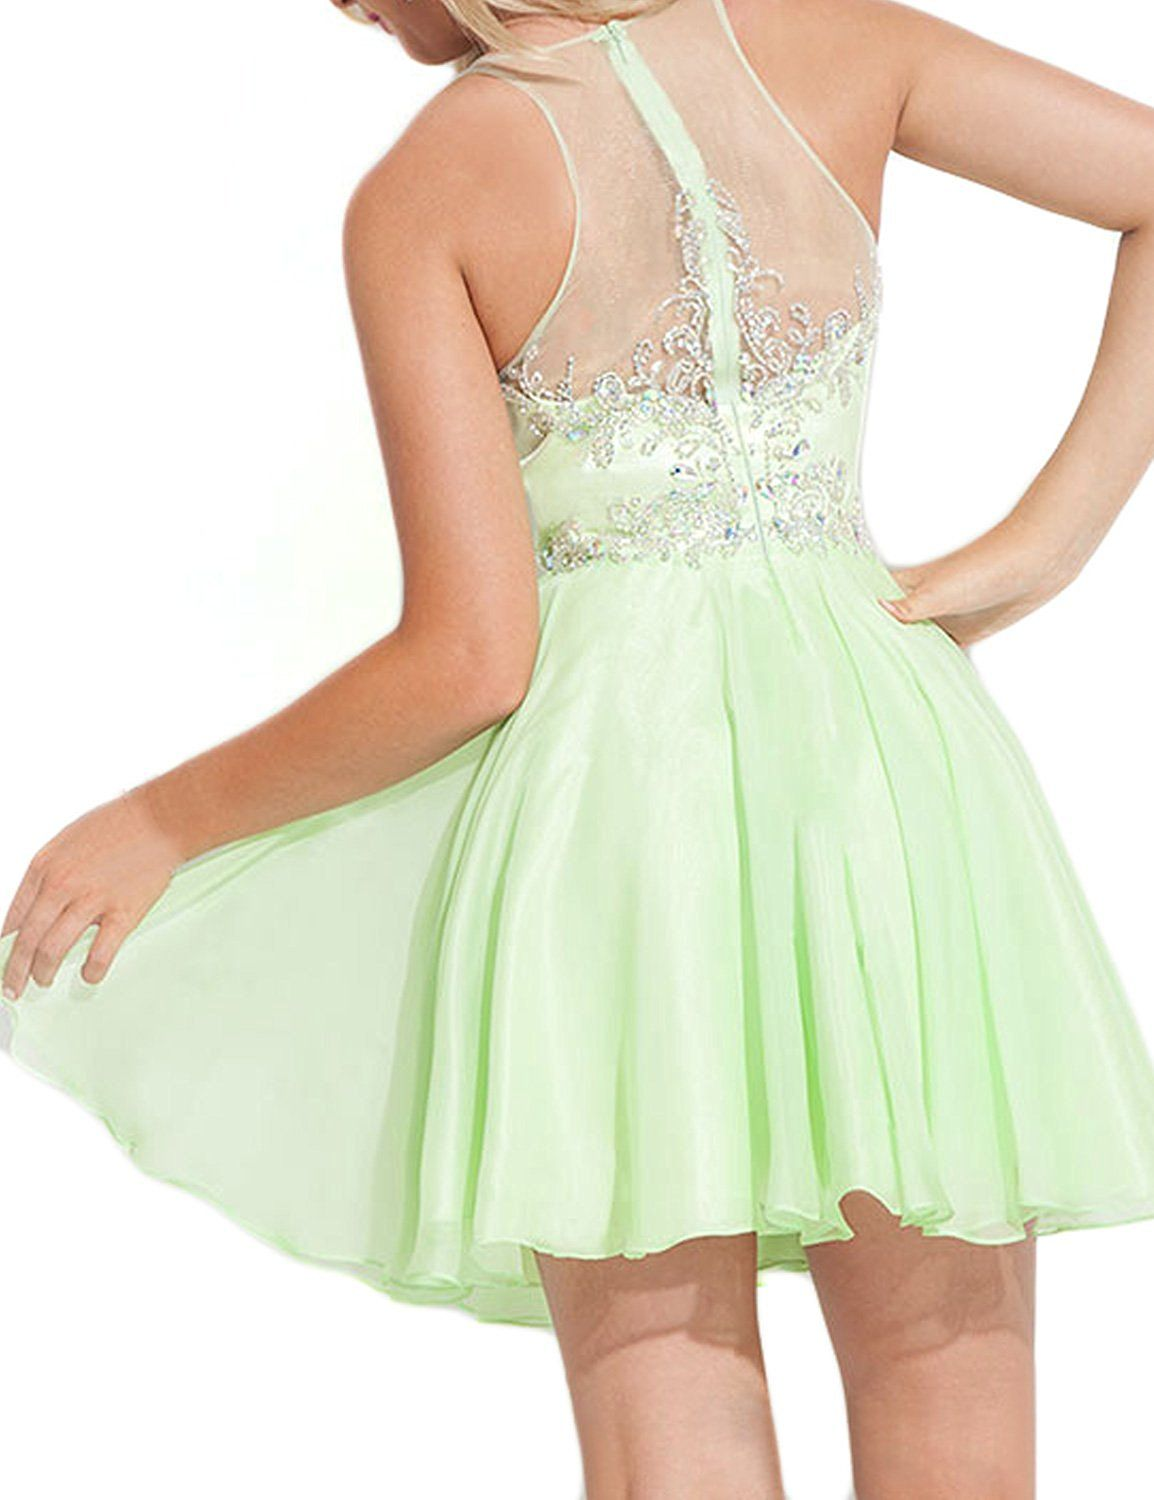 142773d550a Amazon.com  SeasonMall Women s Short Prom Dresses A Line Chiffon  Tulle Homecoming  Dresses  Clothing